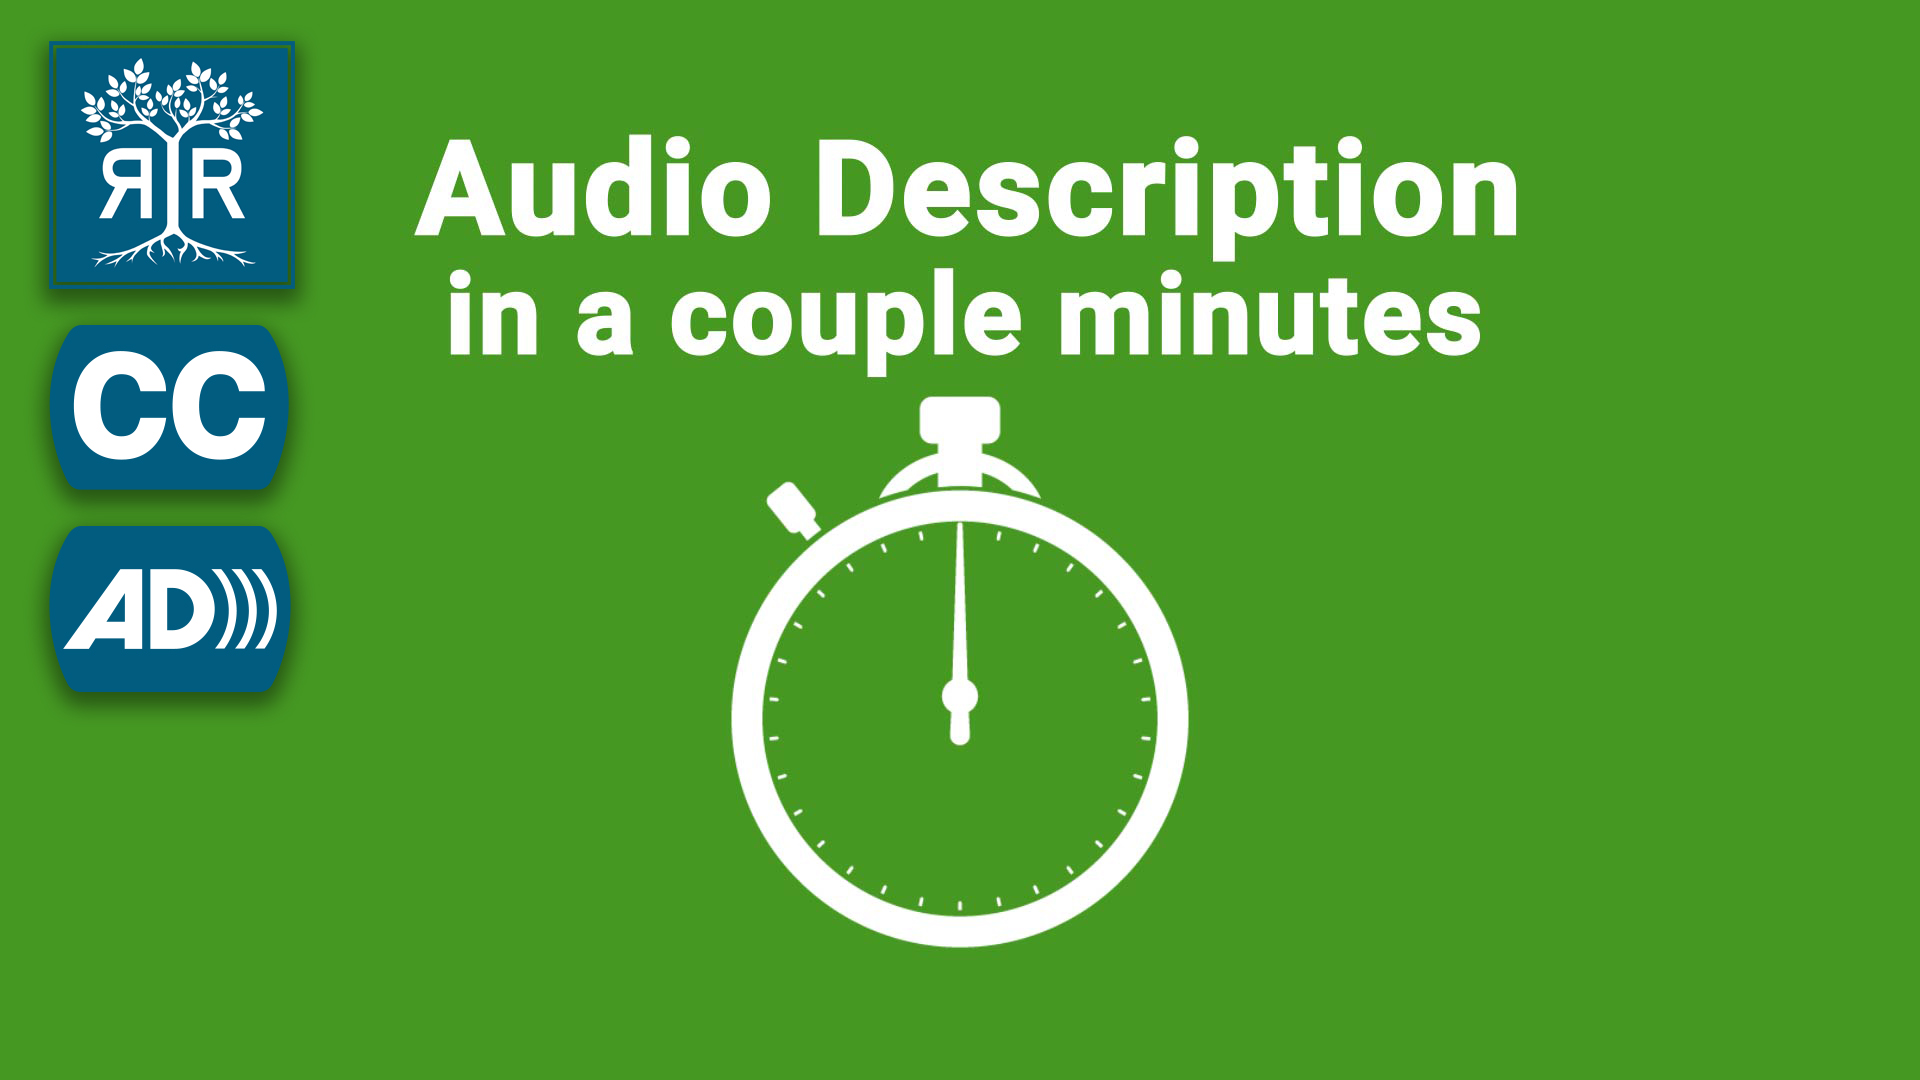 Image of an illustrated clock with the following text against a green background: Audio Description in a couple minutes